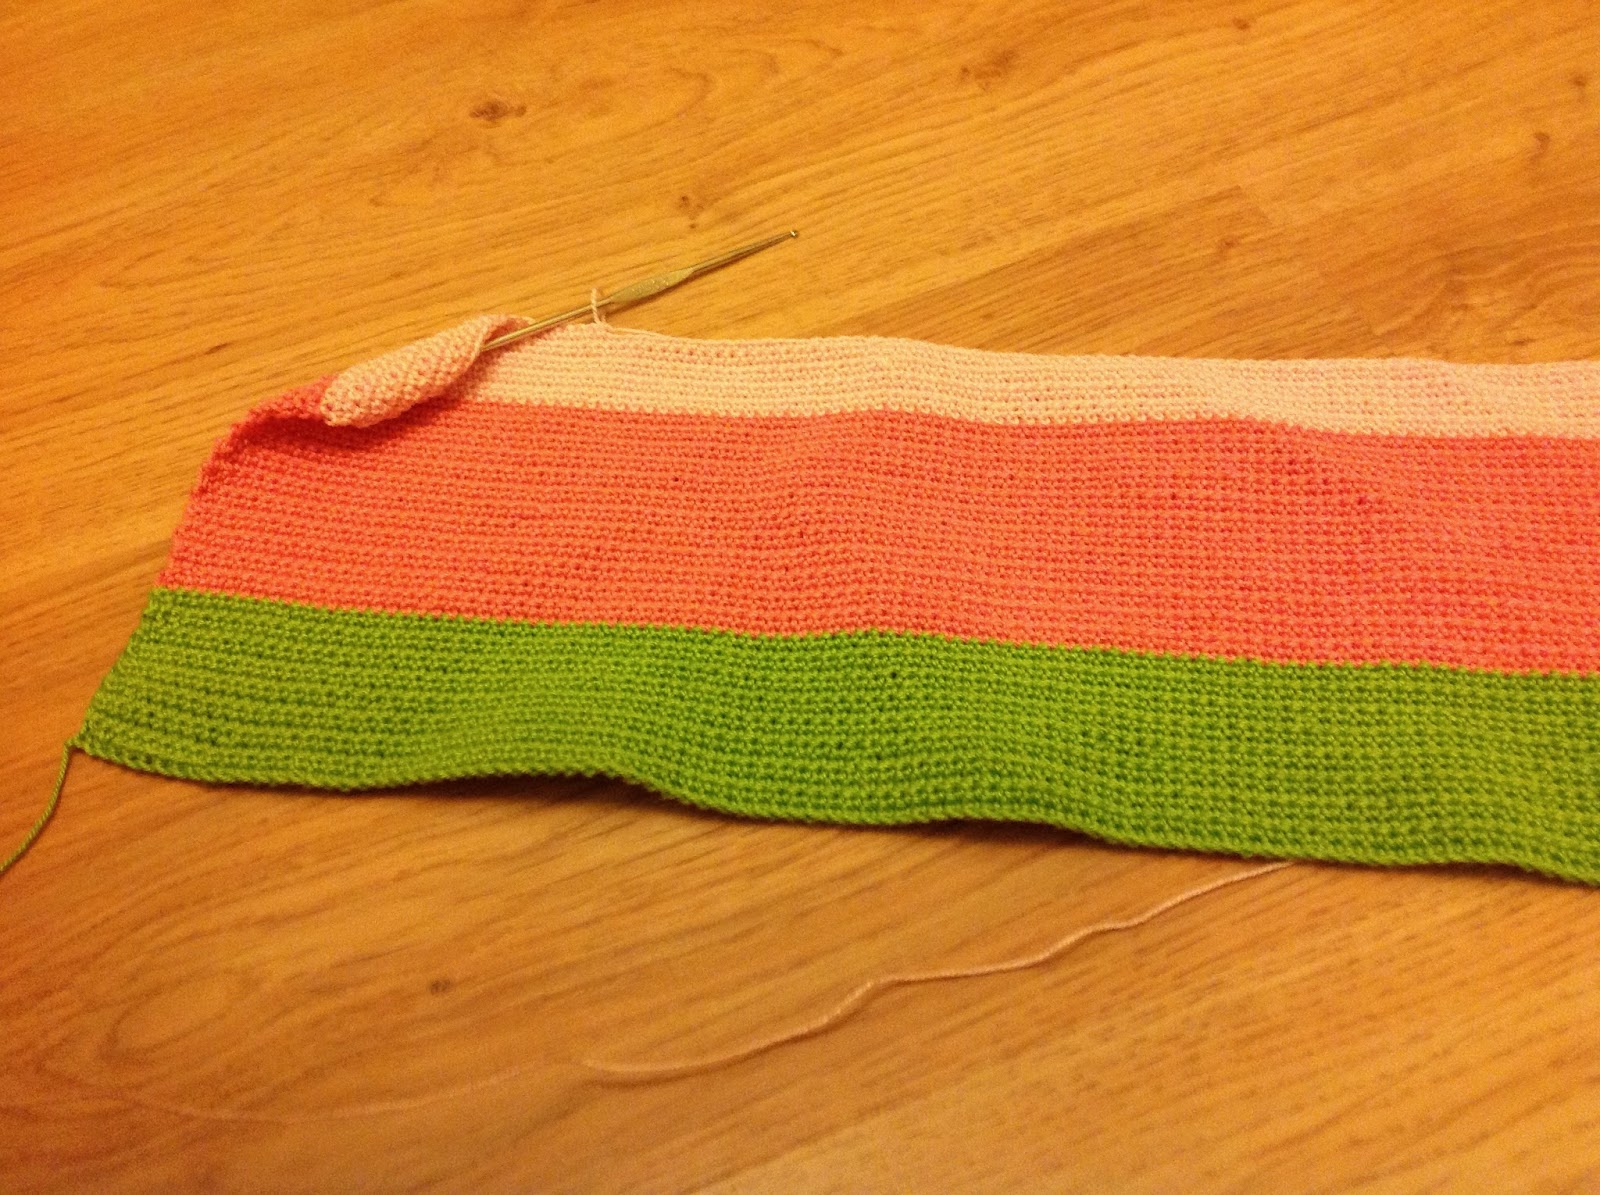 Diy Crochet Book Cover ~ Crochet book cover keeping it real